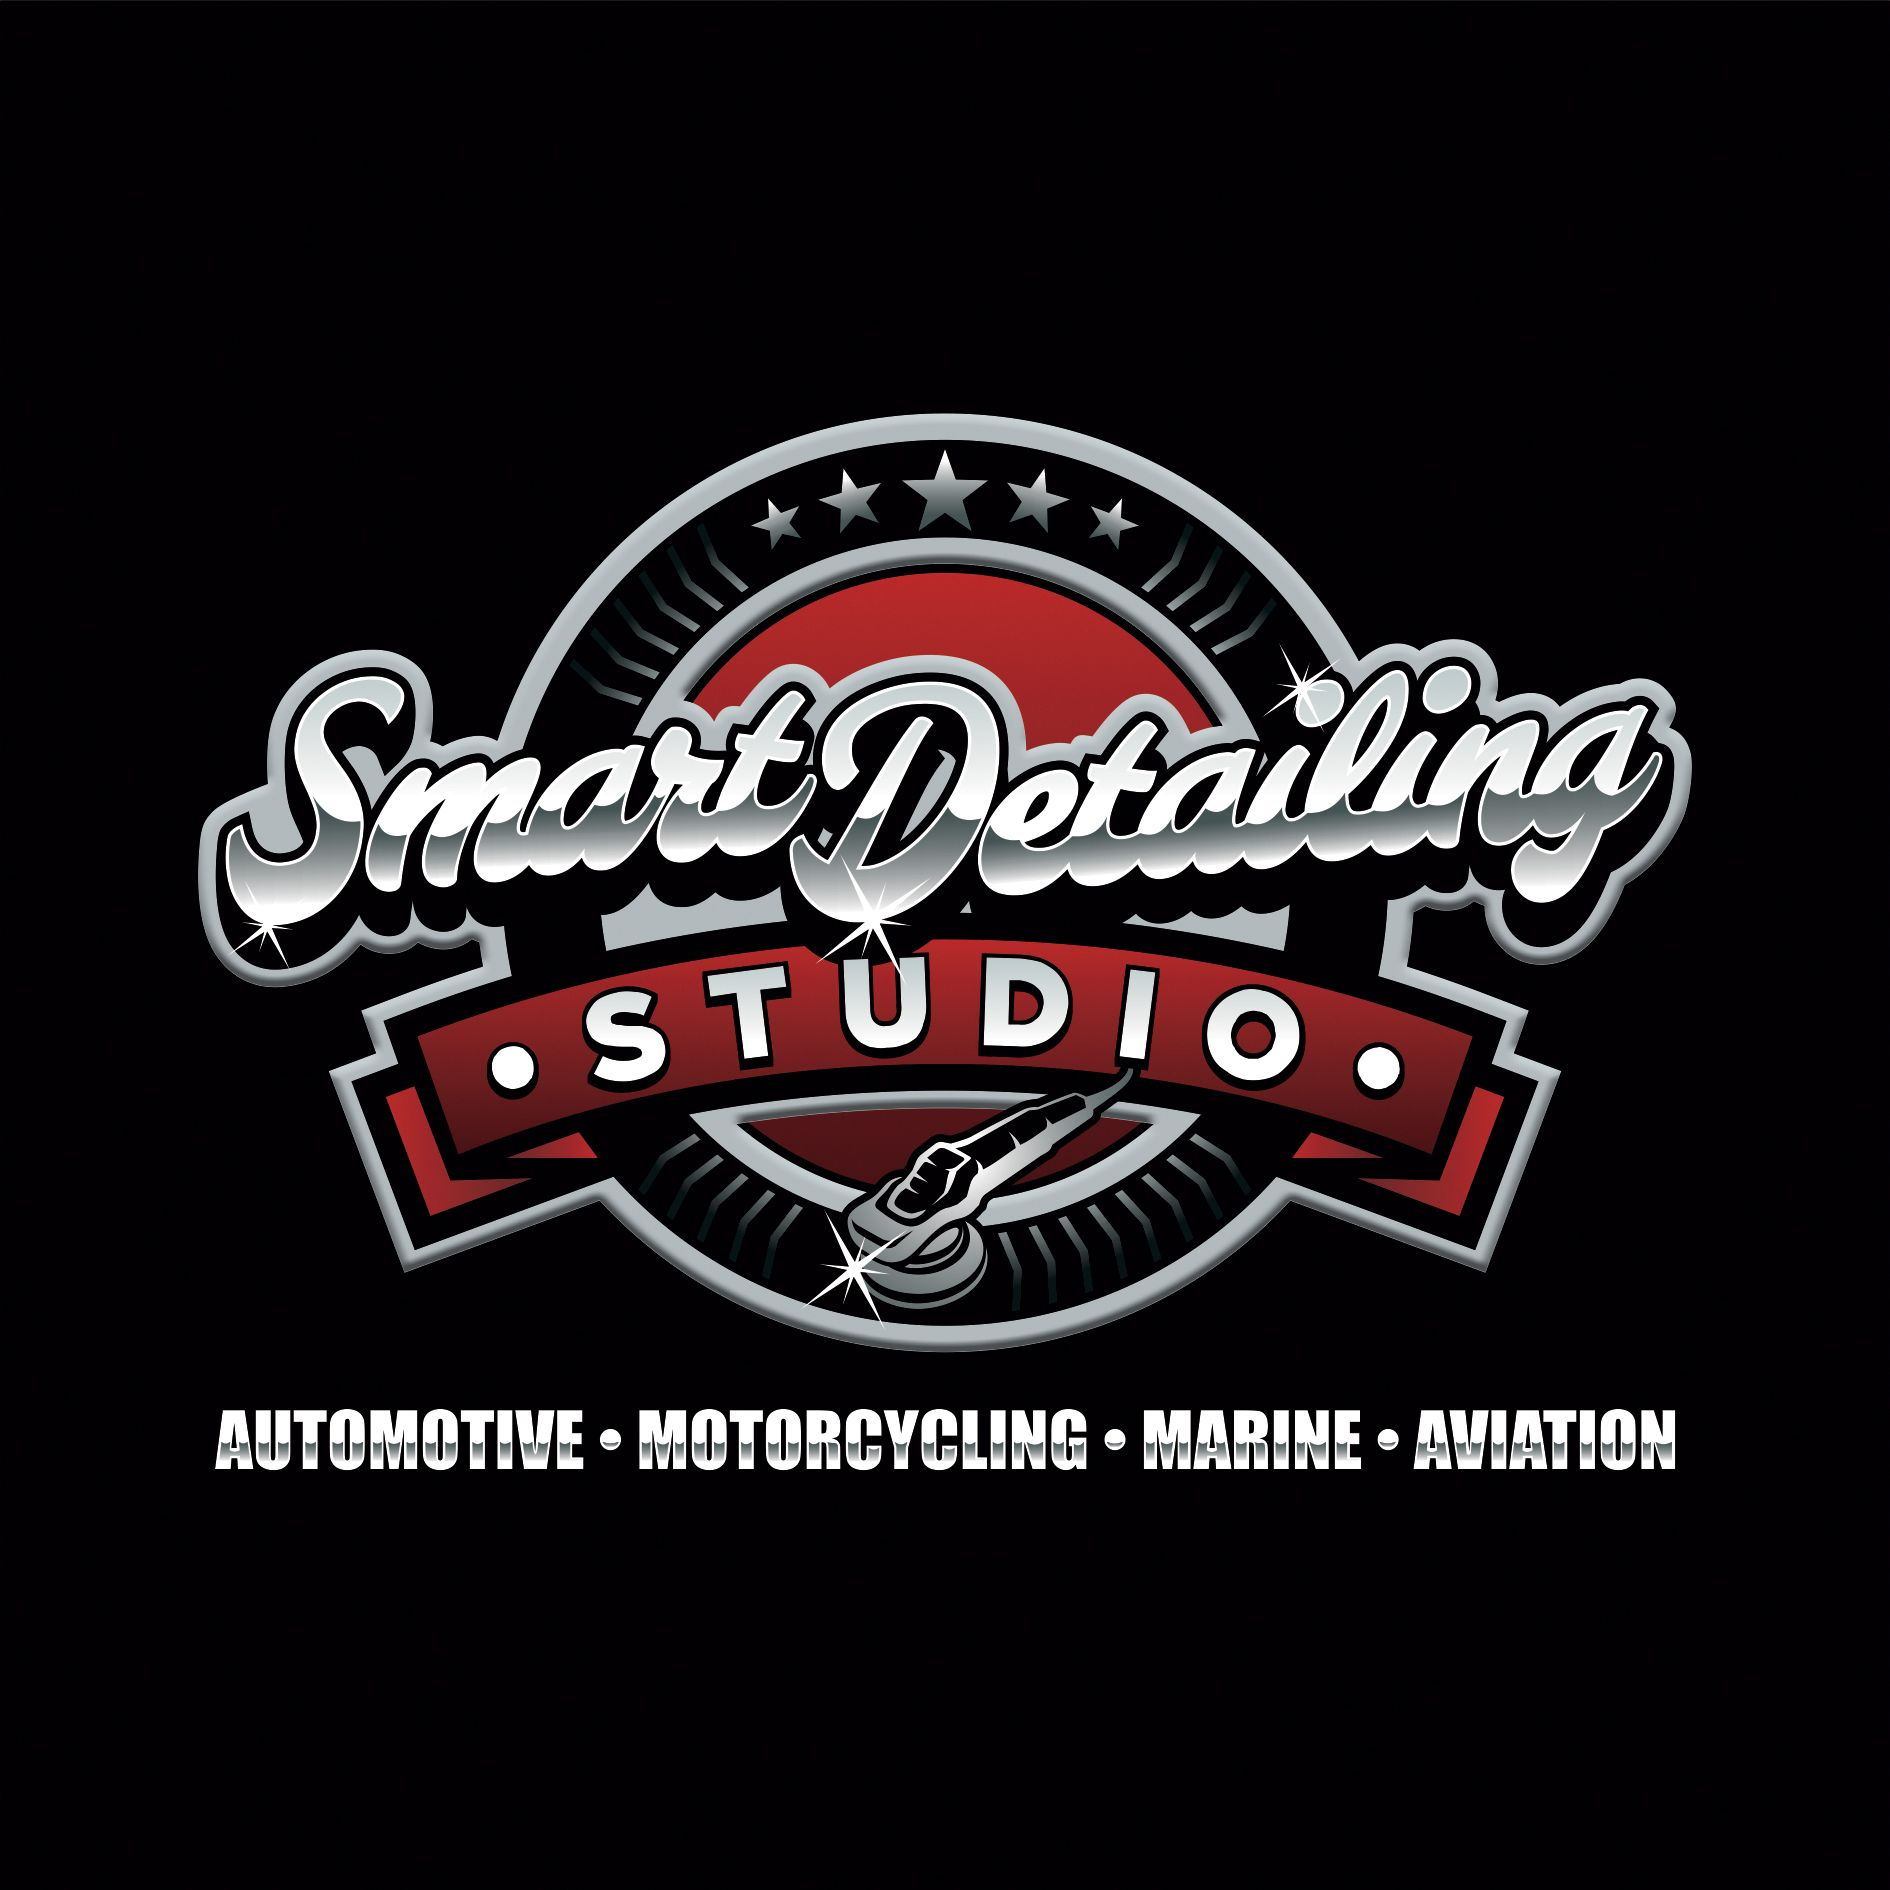 Logo Smart Detailing in 2020 Automotive logo design